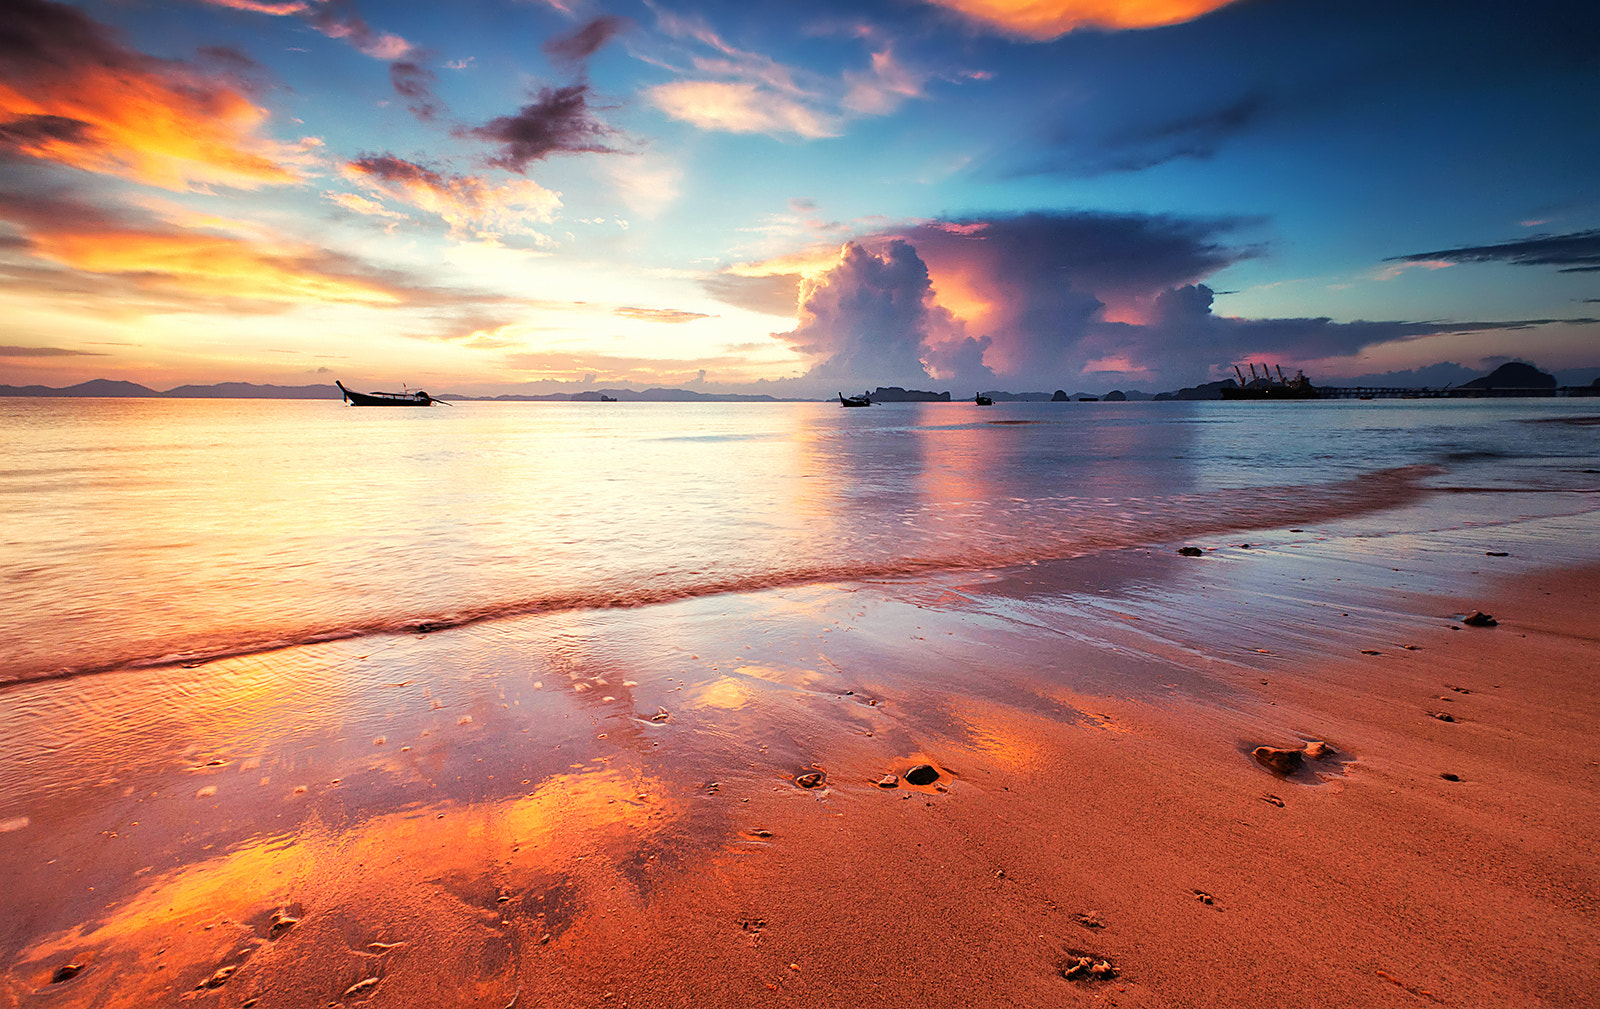 Photograph Krabi.Thailand. by Wazabi Bomb  on 500px